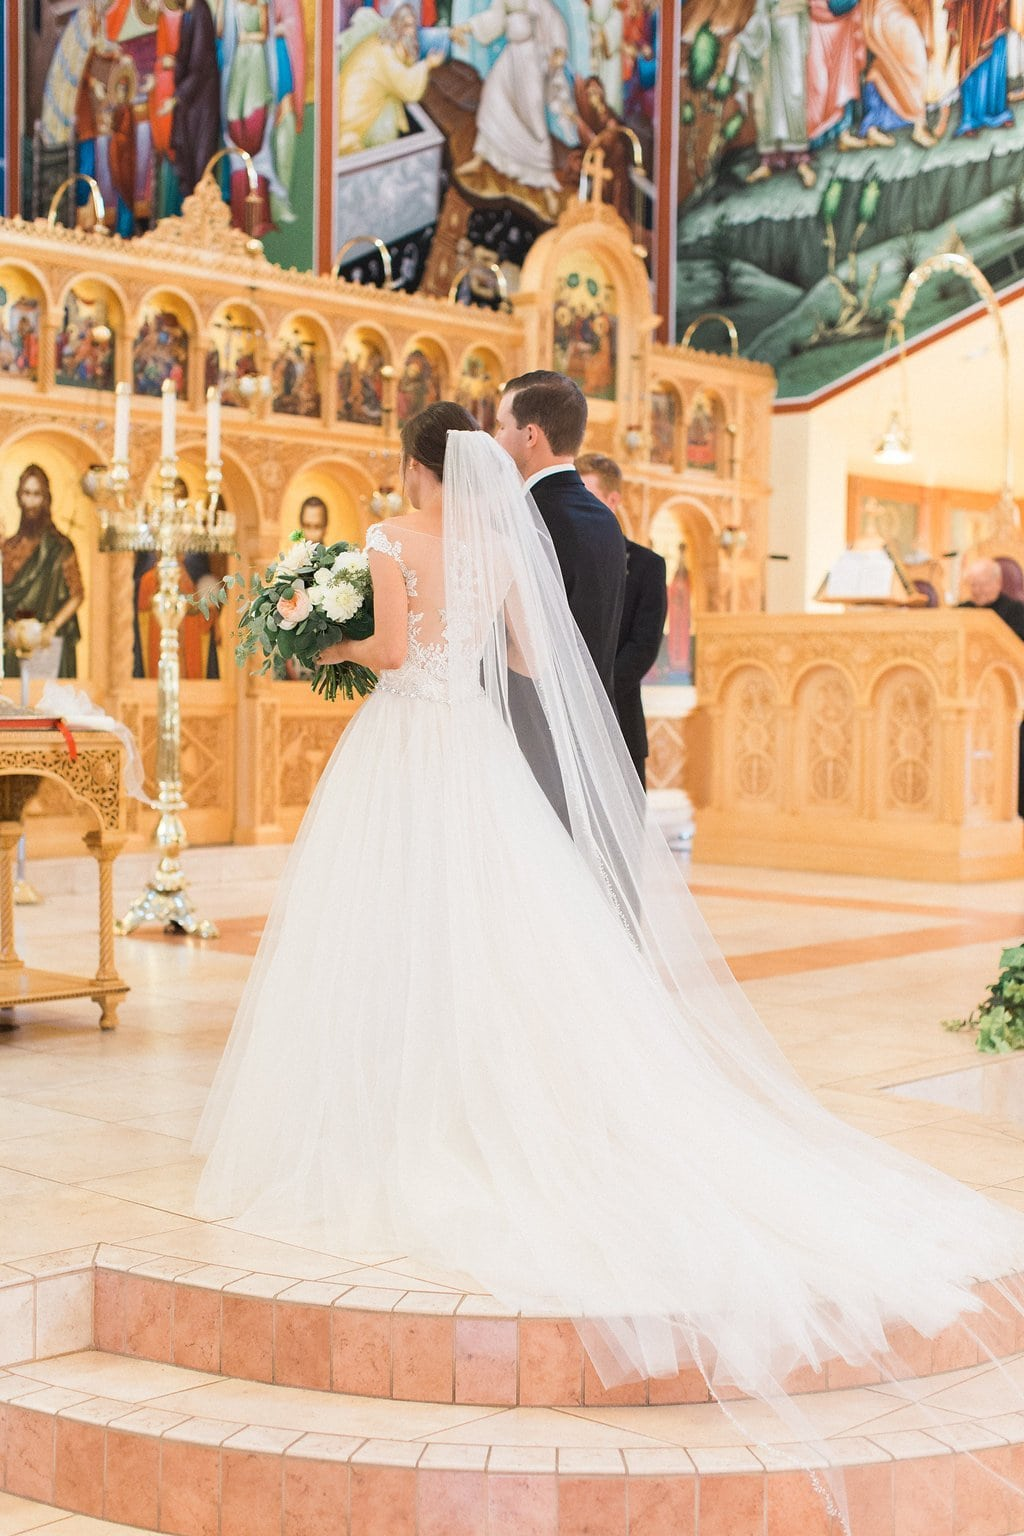 The bride and groom walking up to the alter at the All Saints Greek Orthodox Church